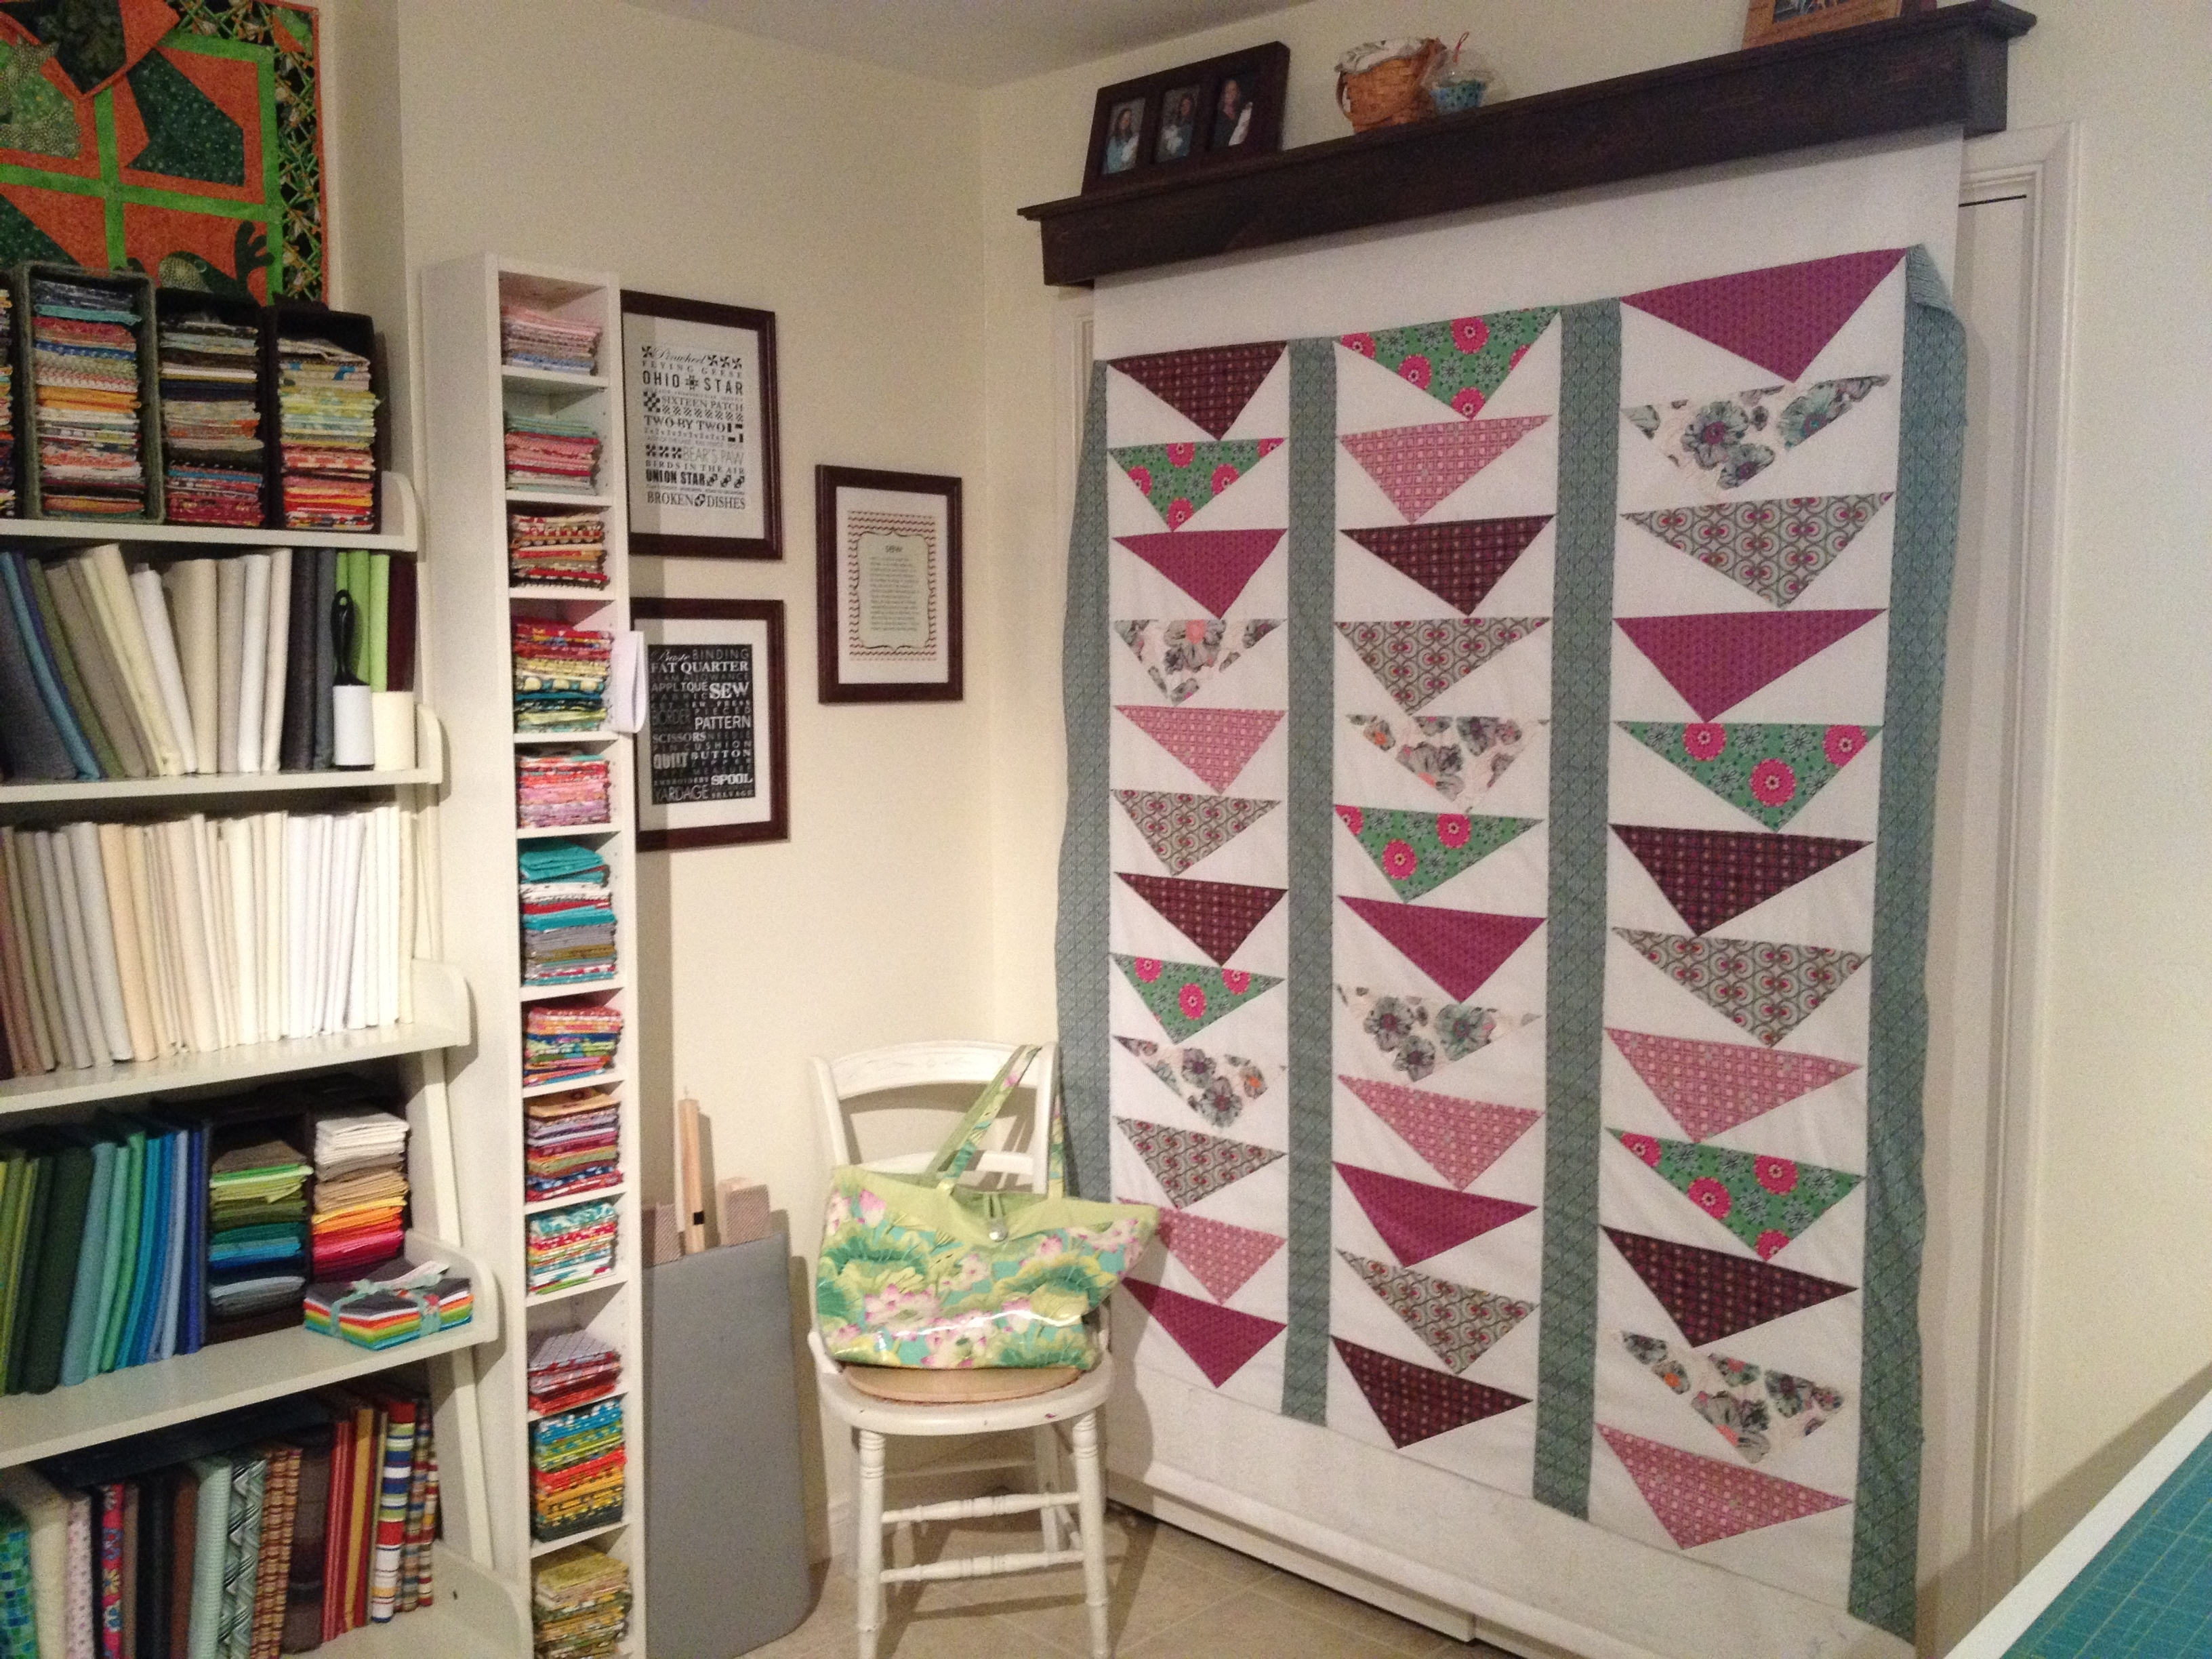 Sewing Room Of The Month – Art Gallery Fabrics – The Creative Blog With Regard To Newest Ikea Fabric Wall Art (View 15 of 15)